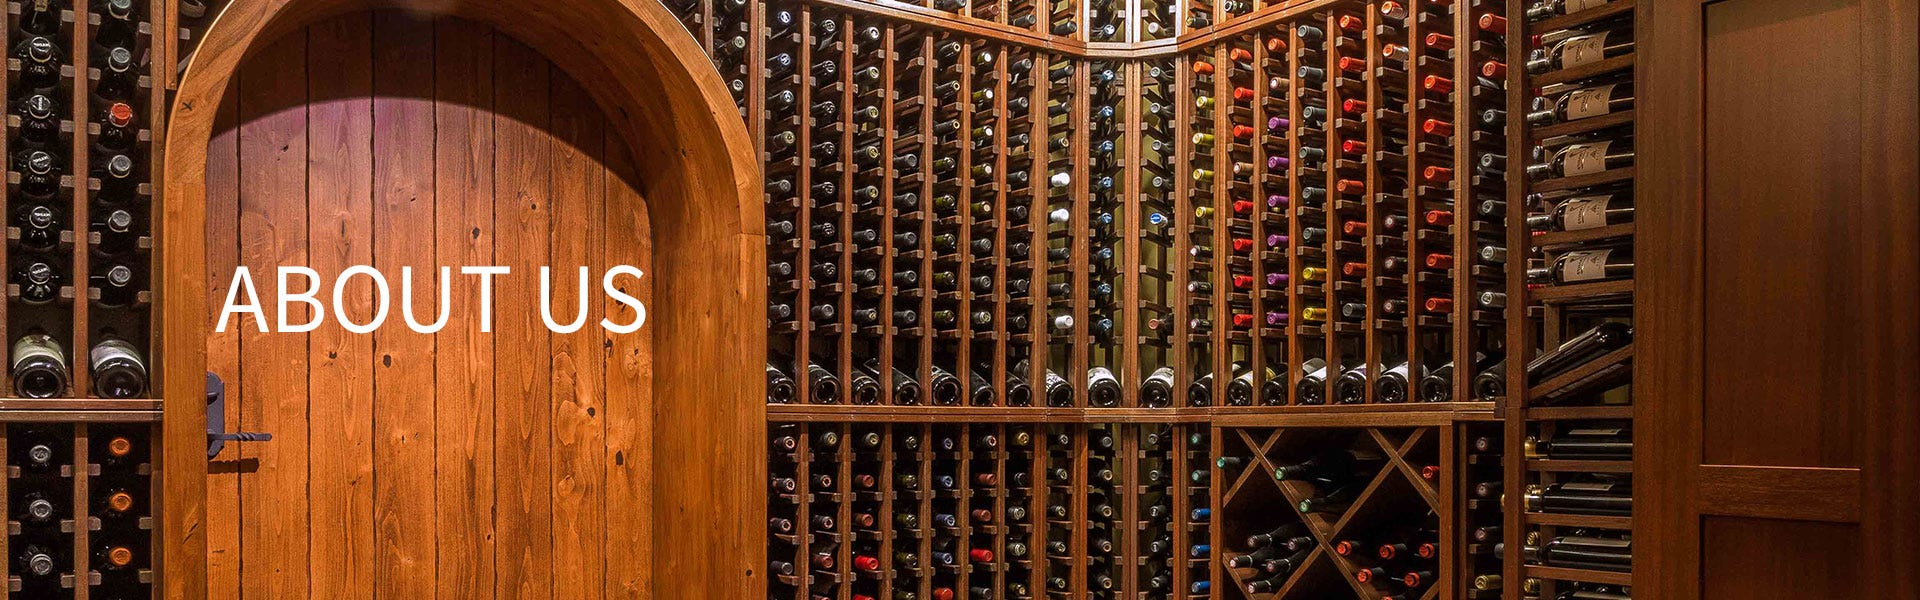 About us Wine Cellar